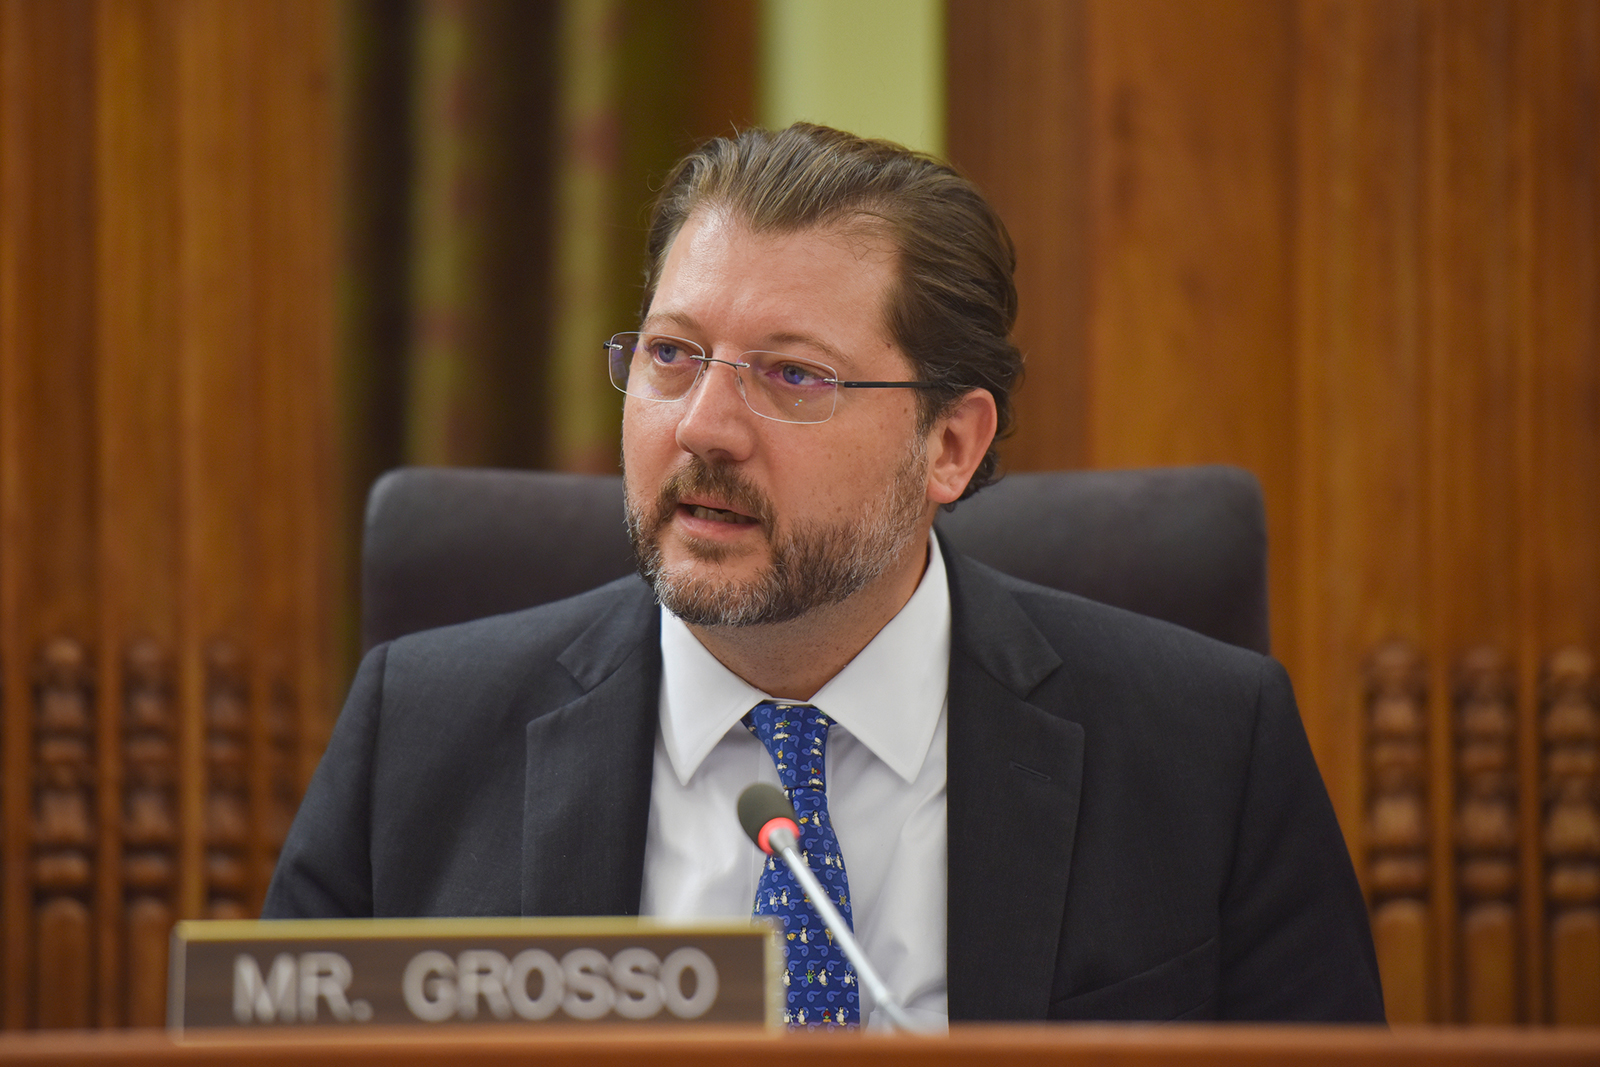 Councilmember David Grosso speaks at a D.C. City Council vote on Tuesday, May 2, 2017, in Washington, DC.